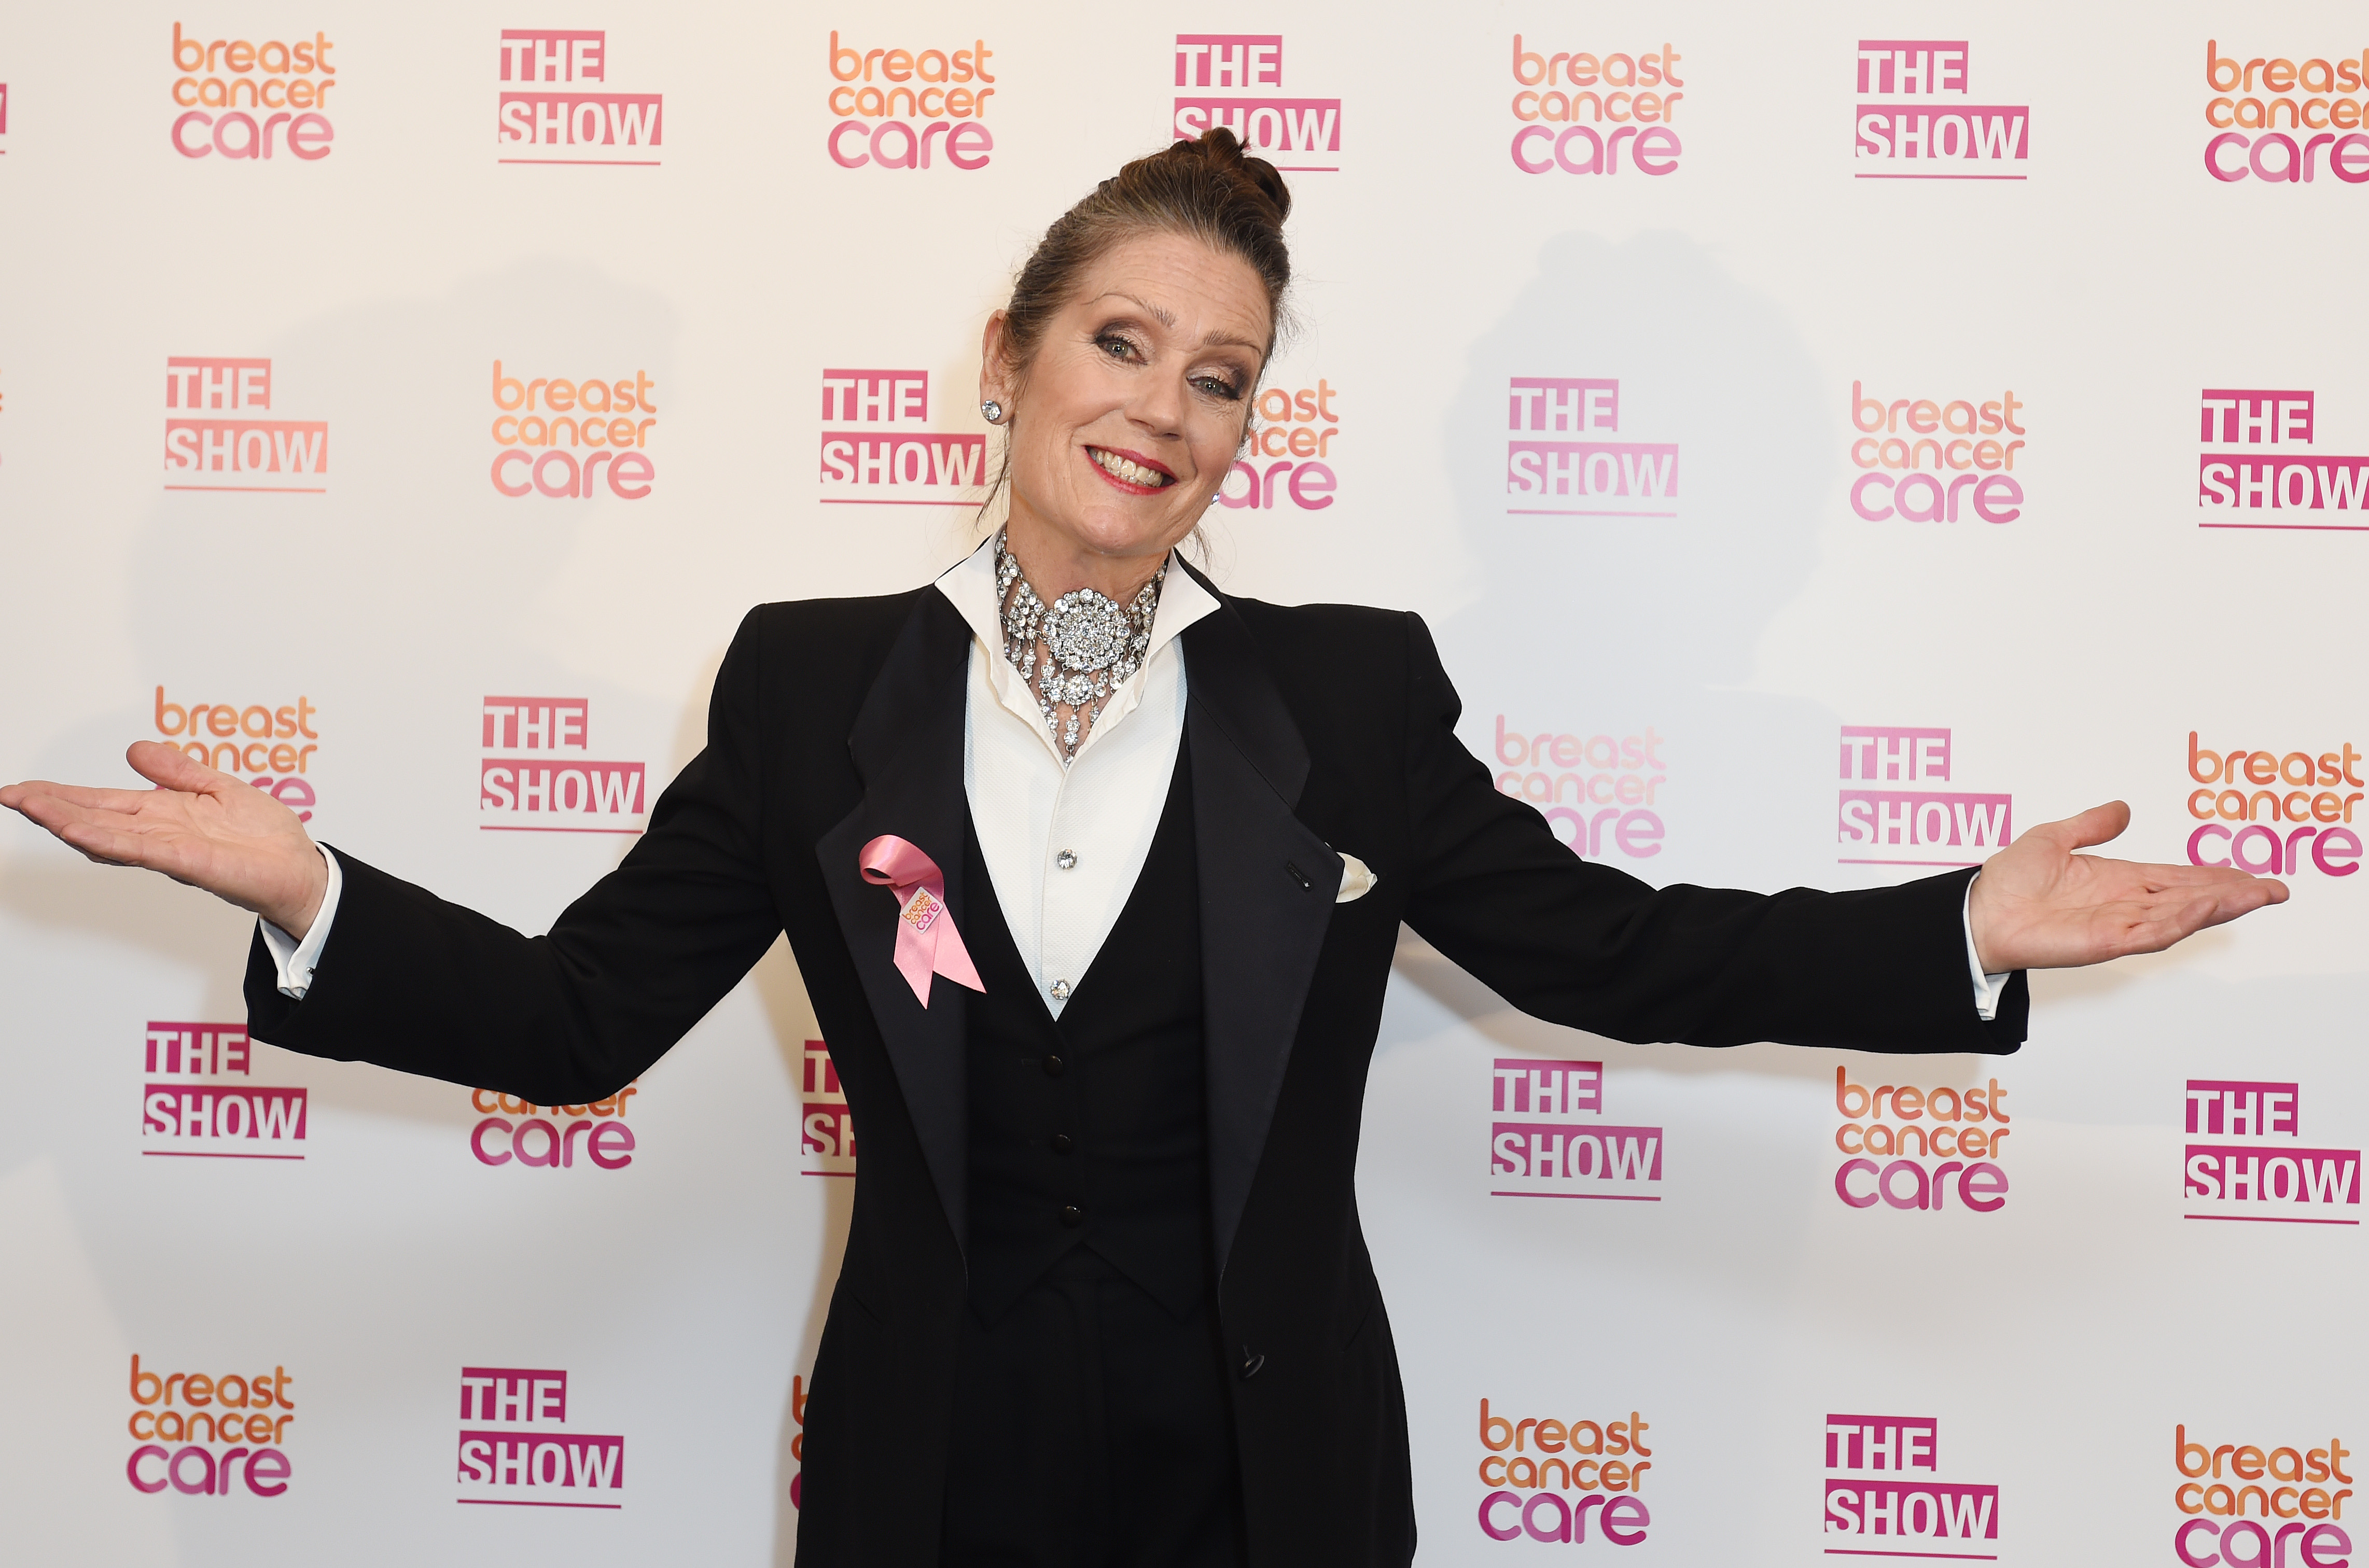 LONDON, ENGLAND - OCTOBER 07:  Lorraine Chase attends Breast Cancer Care's London fashion show at Grosvenor House Hotel to launch Breast Cancer Awareness Month, on October 7, 2015 in London, England.  (Photo by Tabatha Fireman/Getty Images for Breast Cancer Care)